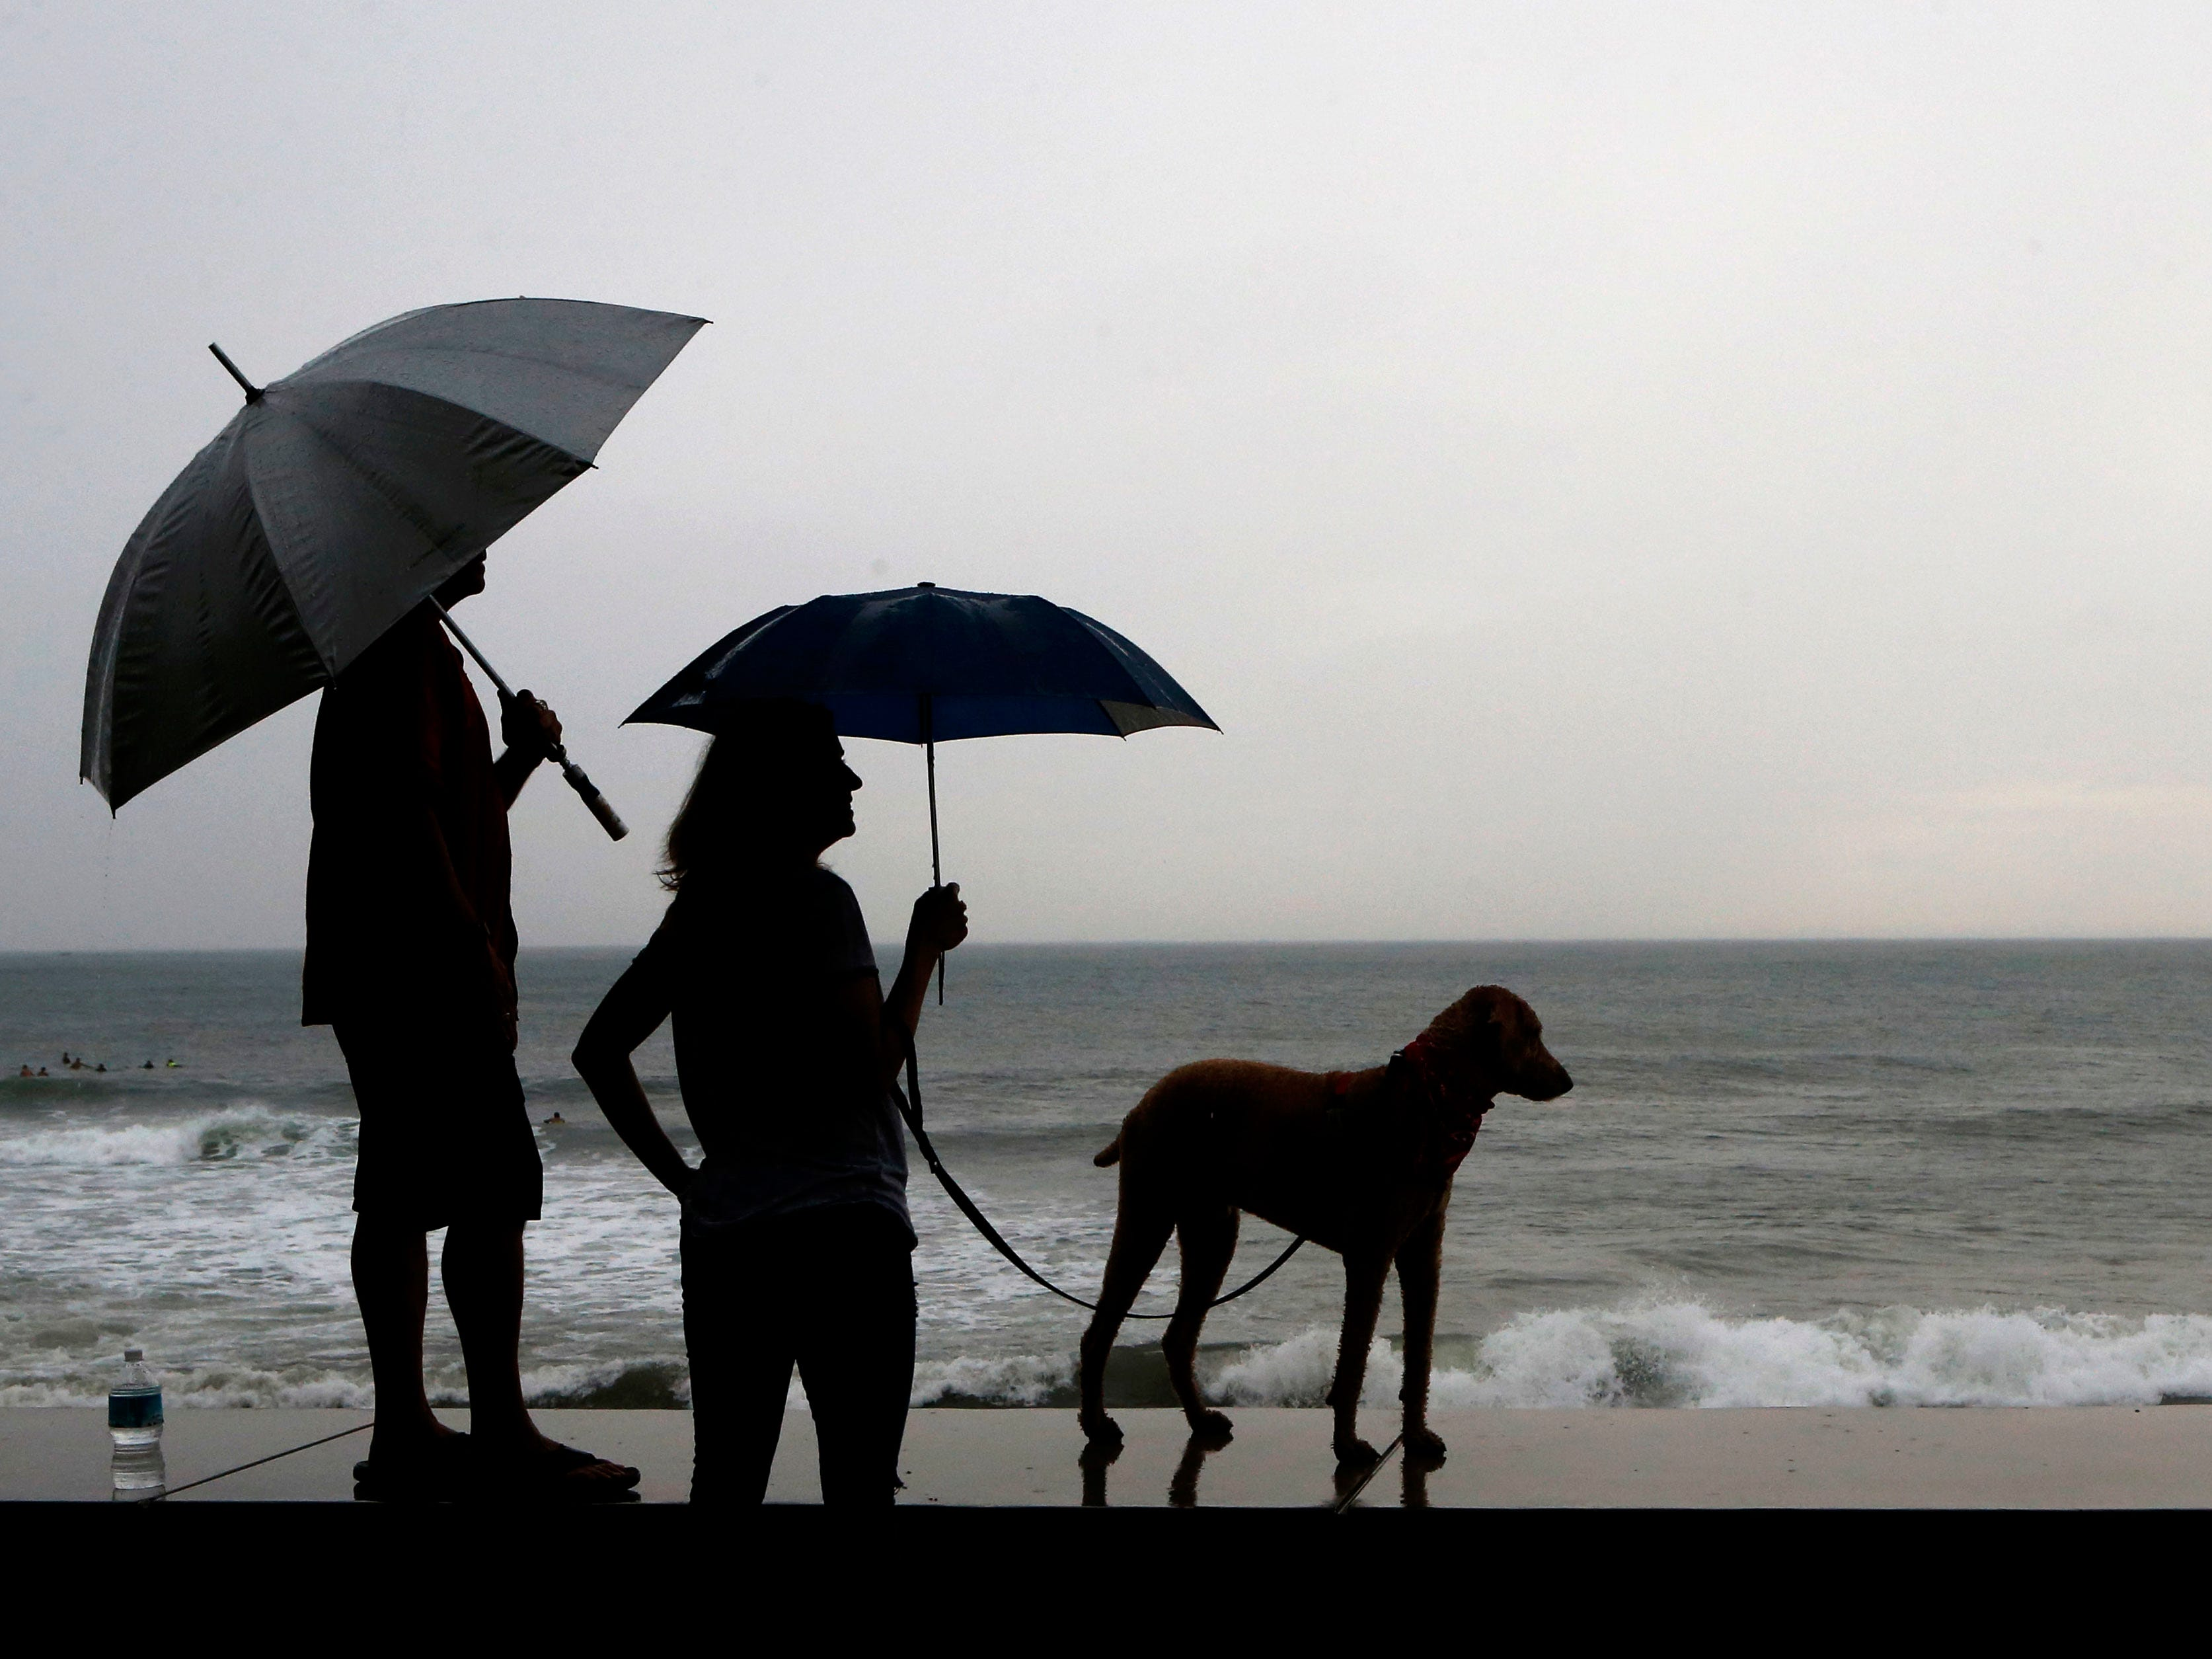 A couple and their dog stand on the seawall prior the landfall of Hurricane Willa, in Mazatlan, Mexico, Tuesday, Oct. 23, 2018. Emergency officials said they evacuated more than 4,250 people in coastal towns and set up 58 shelters ahead of the dangerous Category 3 storm.